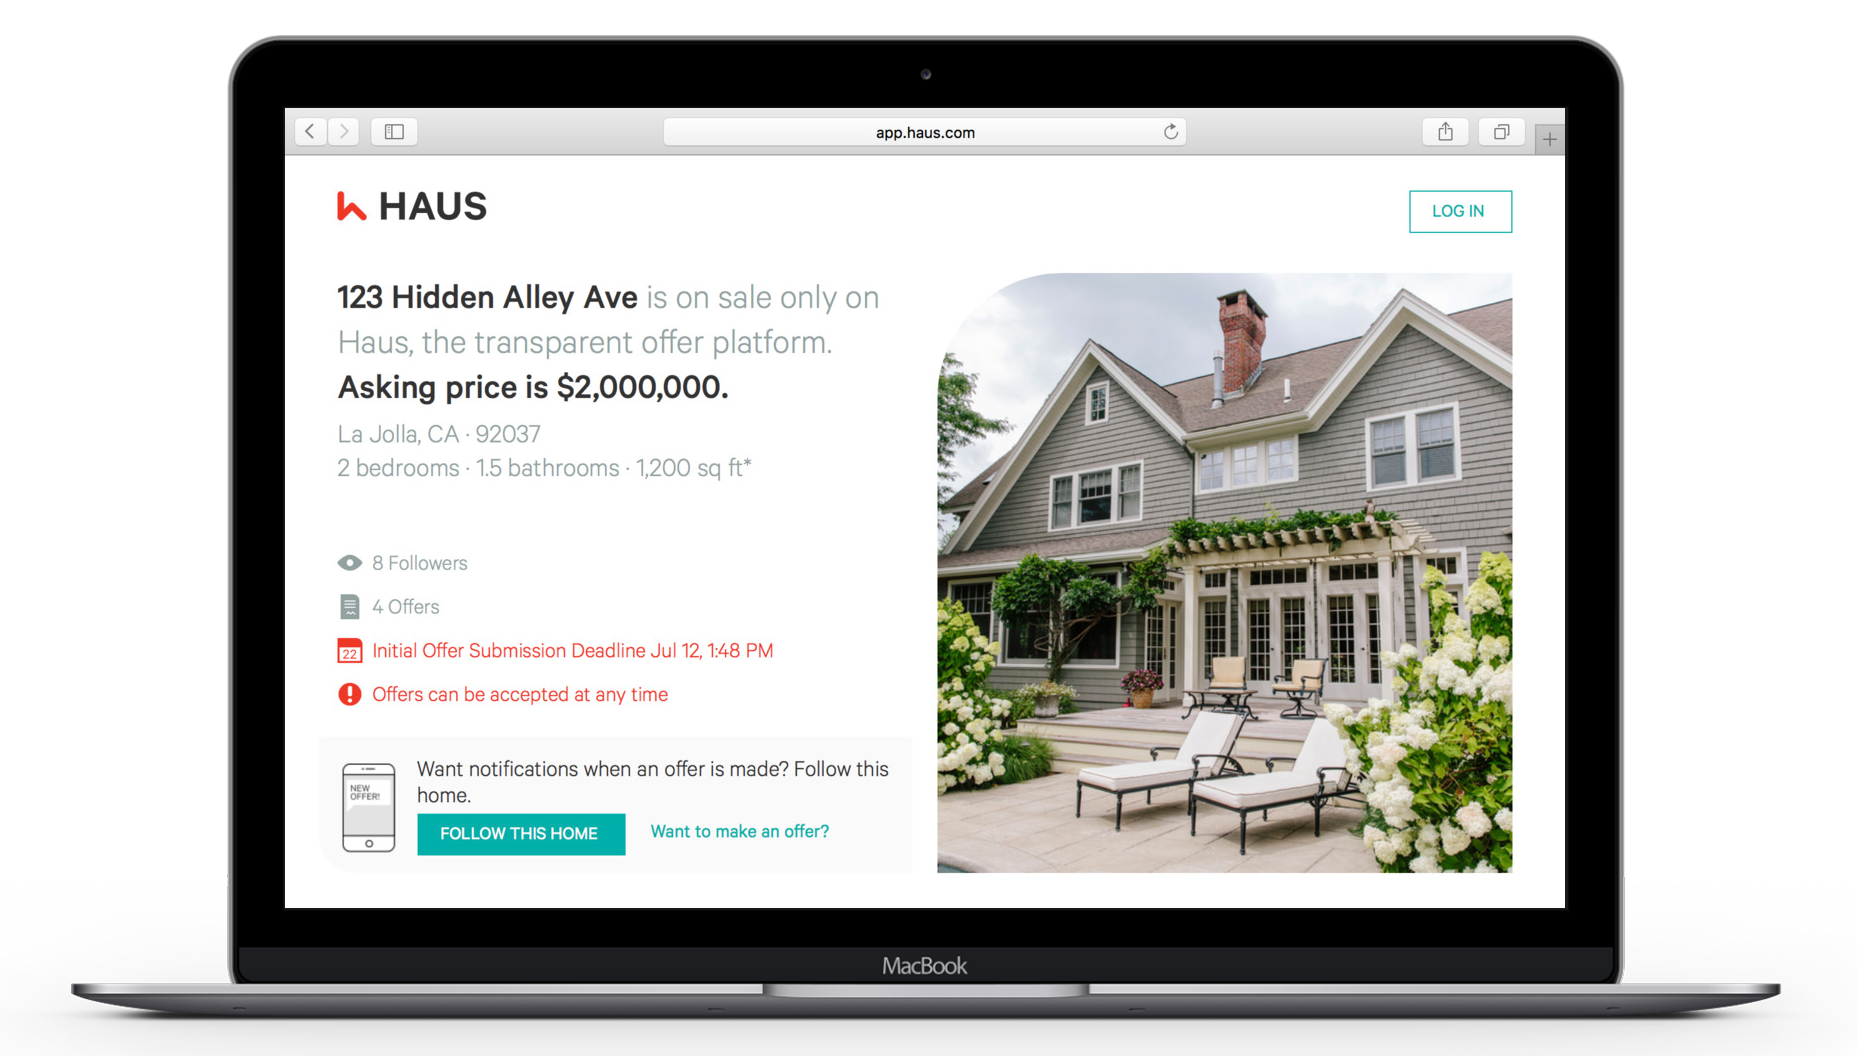 Expau0027s New Startup Haus Helps Make Home Buying And Selling More Transparent